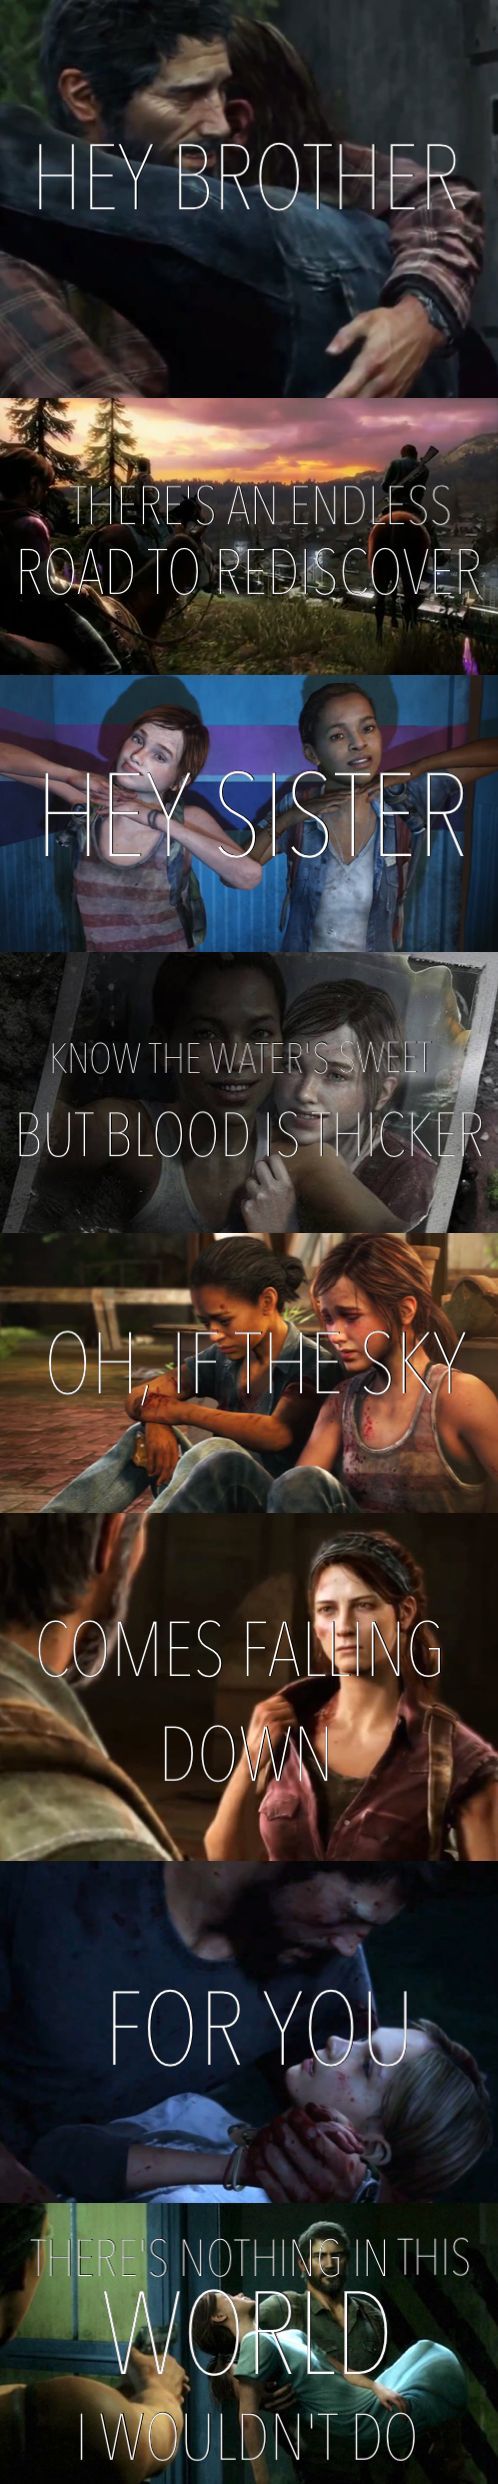 """The Last of Us meets """"Hey Brother"""" by Avicii"""